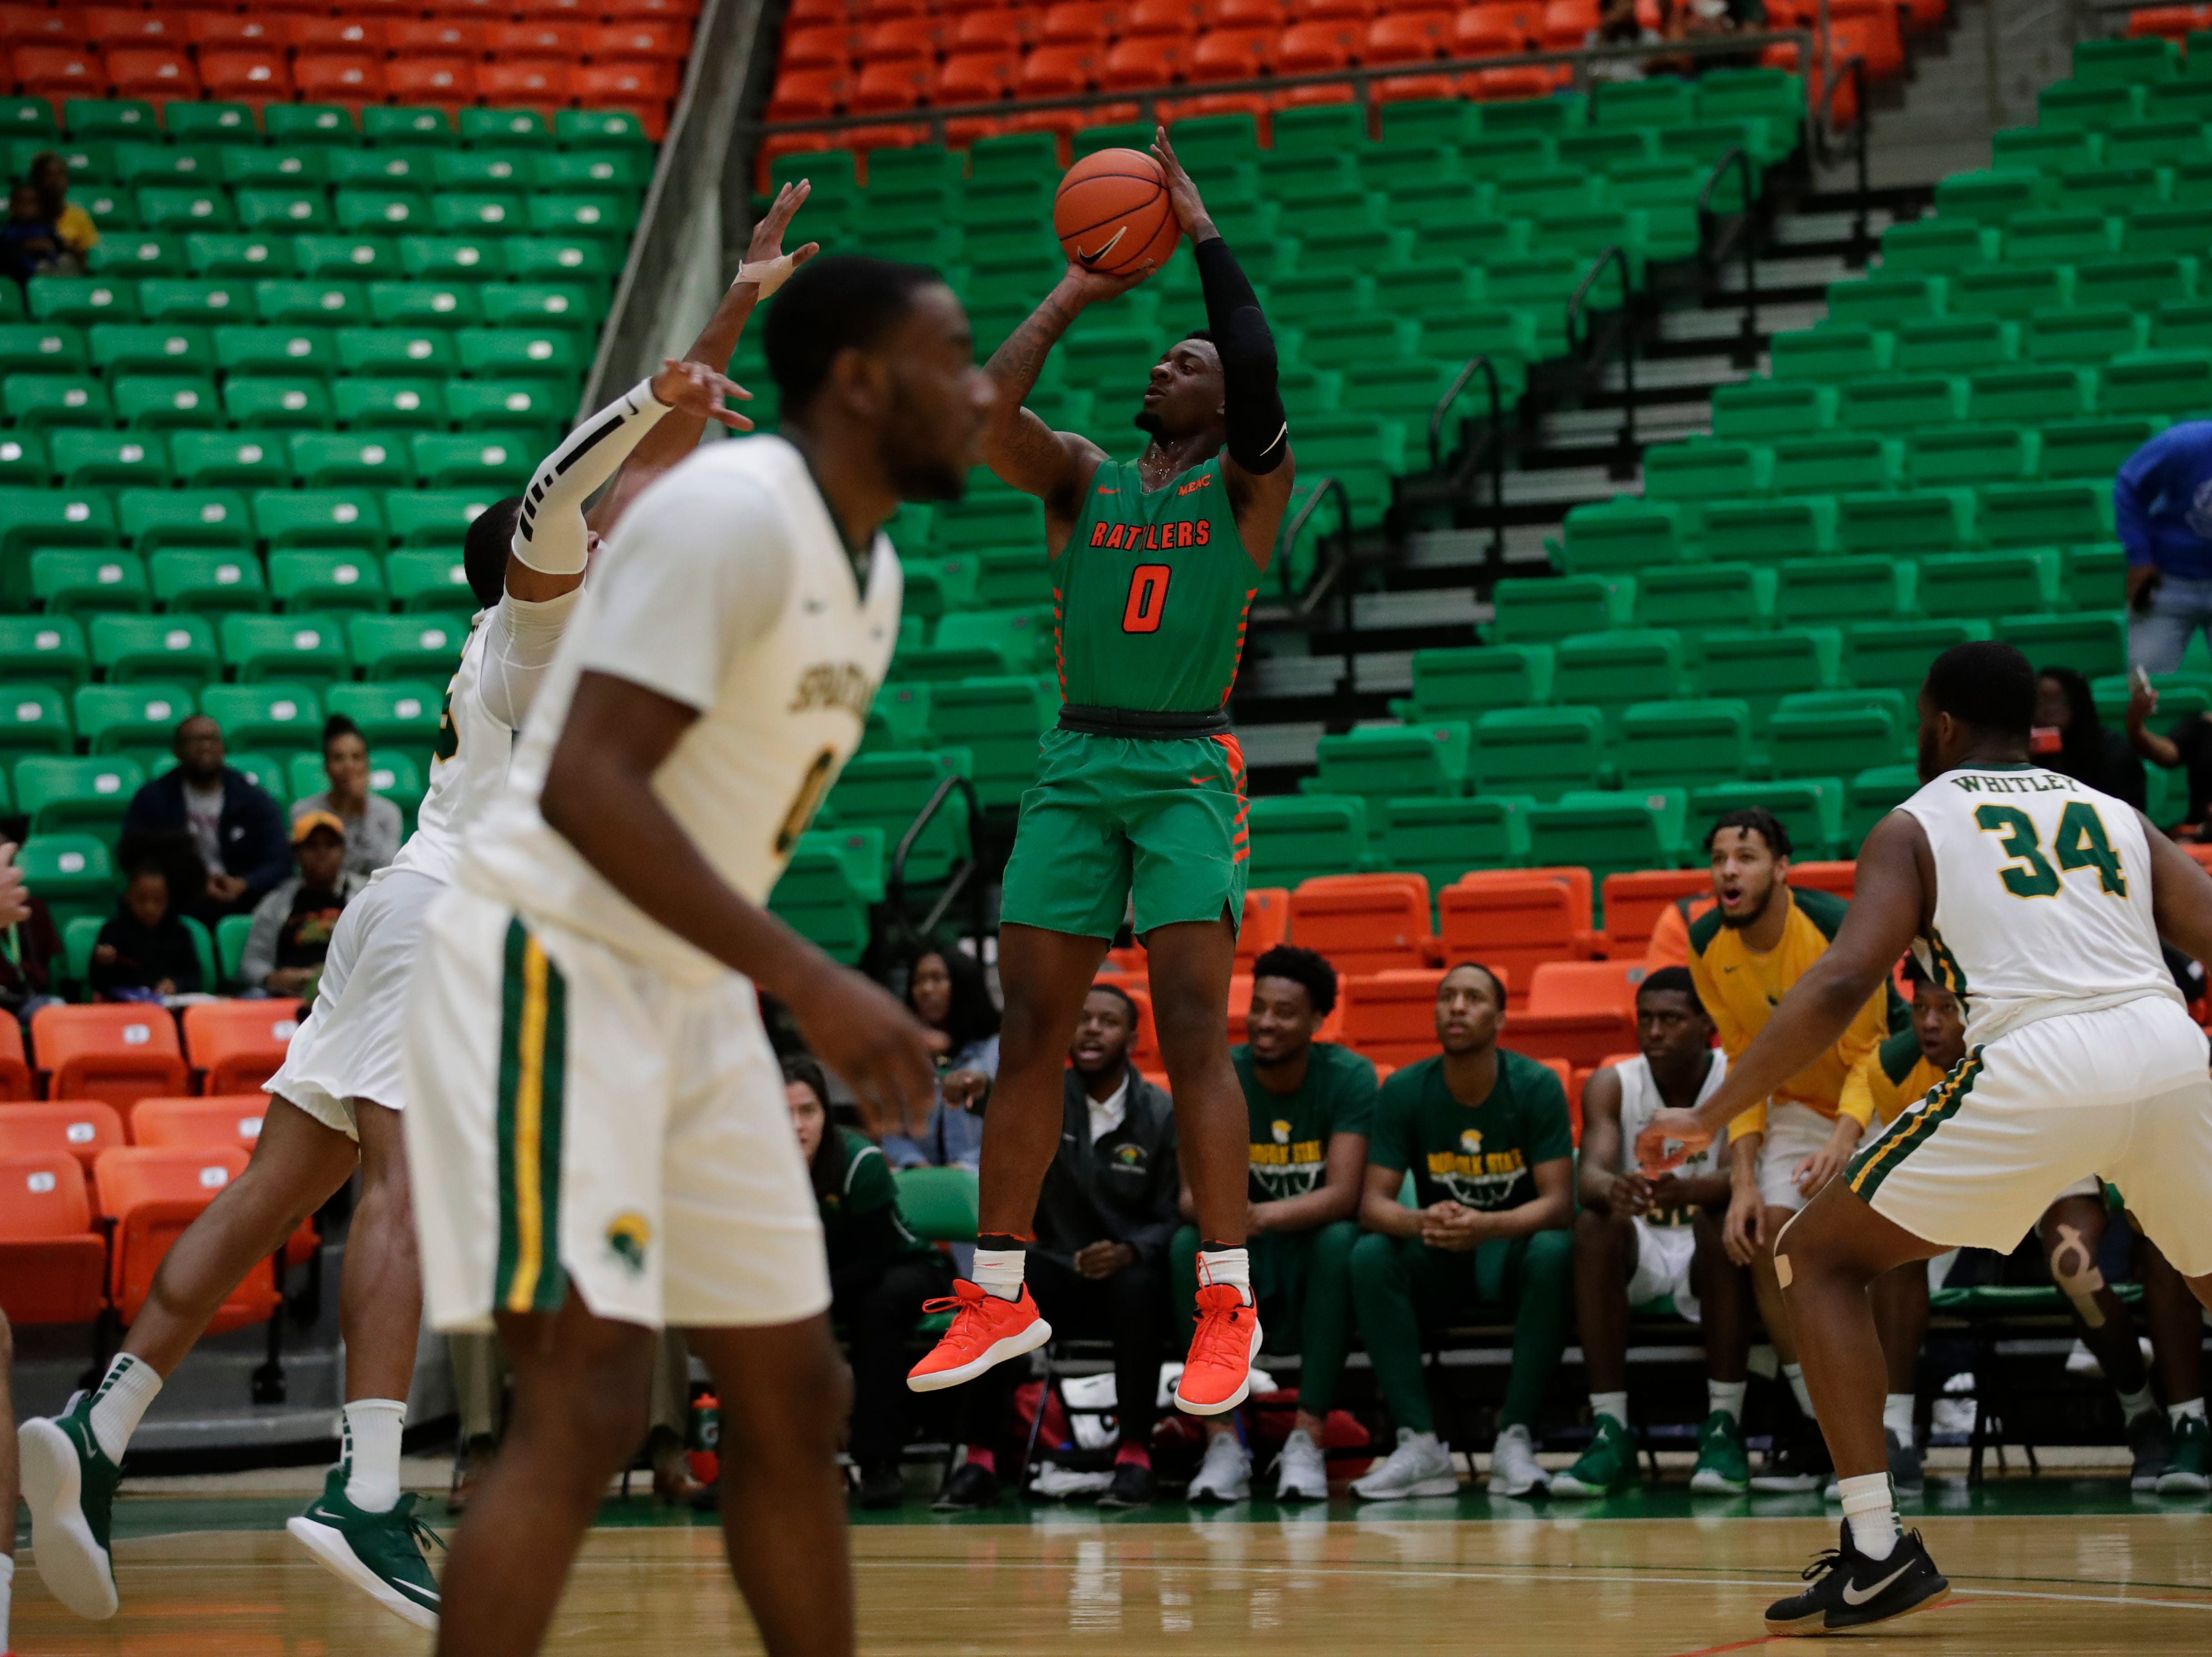 FAMU forward Tracy Hector Jr. shoots a jumper during a game versus Norfolk State at the Alfred Lawson Jr. Multipurpose Center Monday, Feb. 11, 2019.